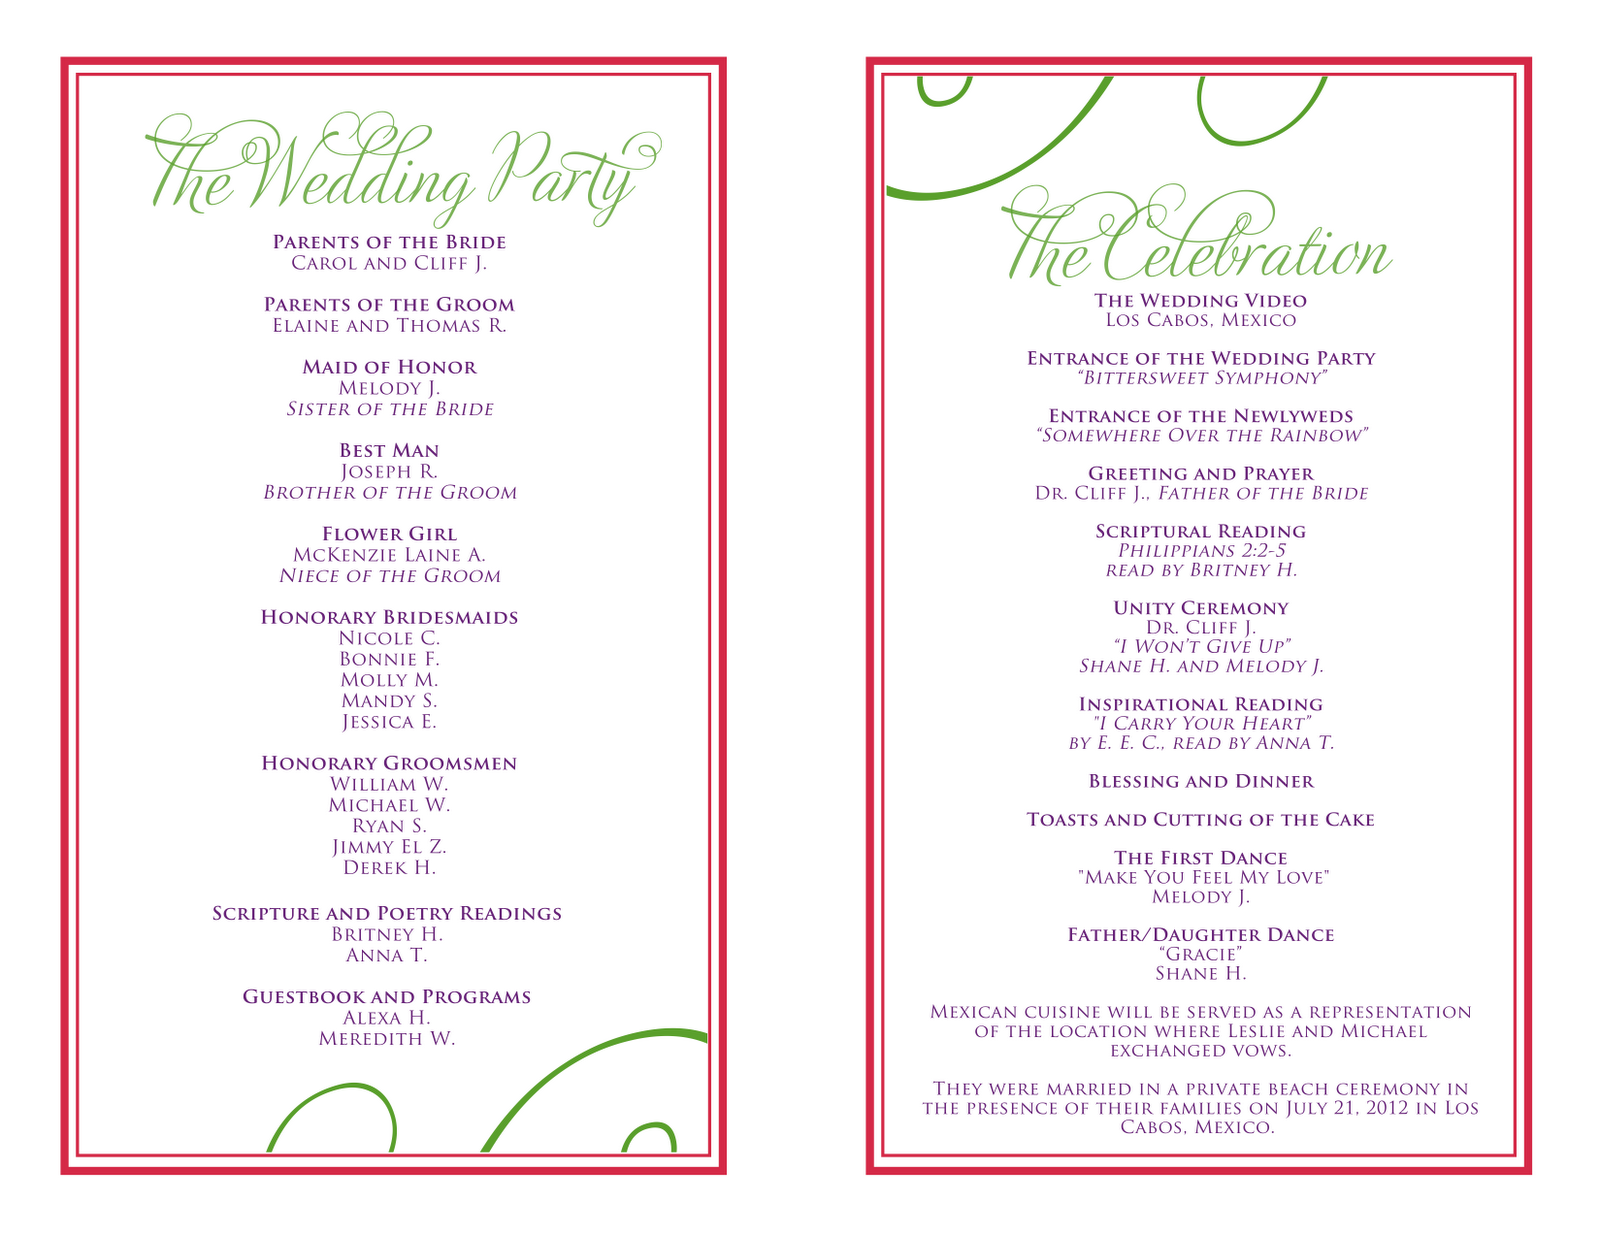 wedding itinerary templates free | Wedding Reception ...